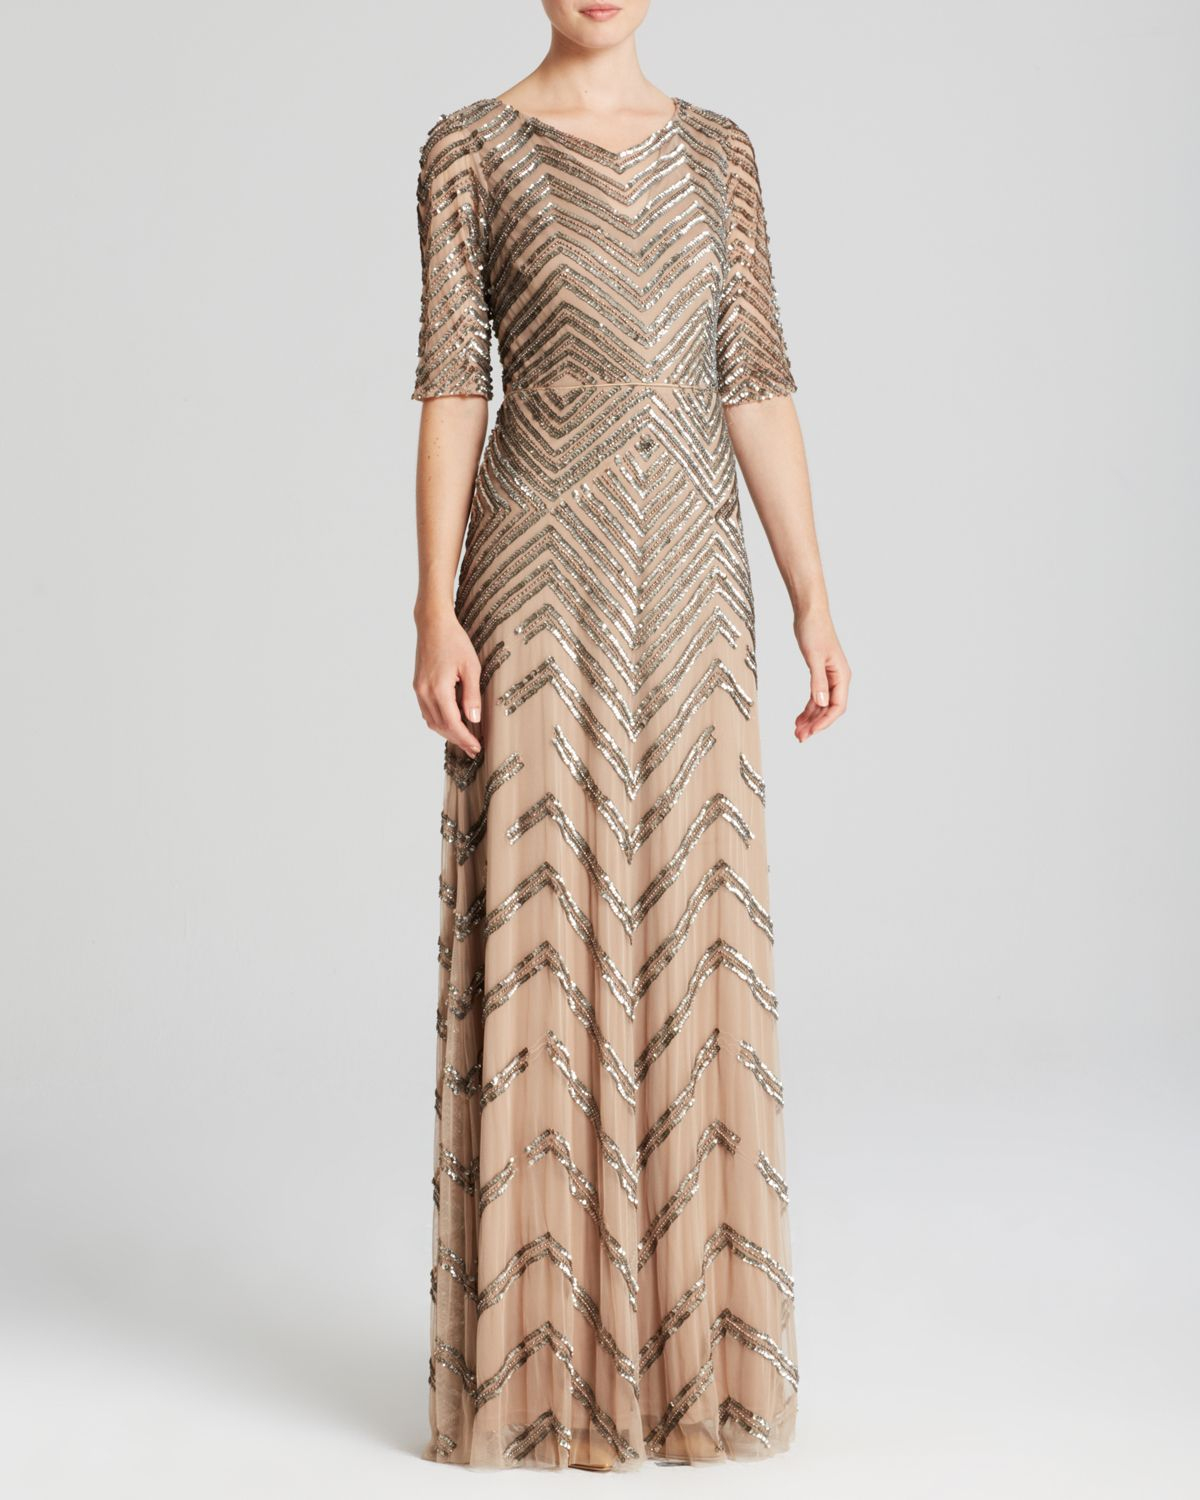 Lyst - Adrianna Papell Elbow Sleeve Chevron Sequin Illusion Gown ...